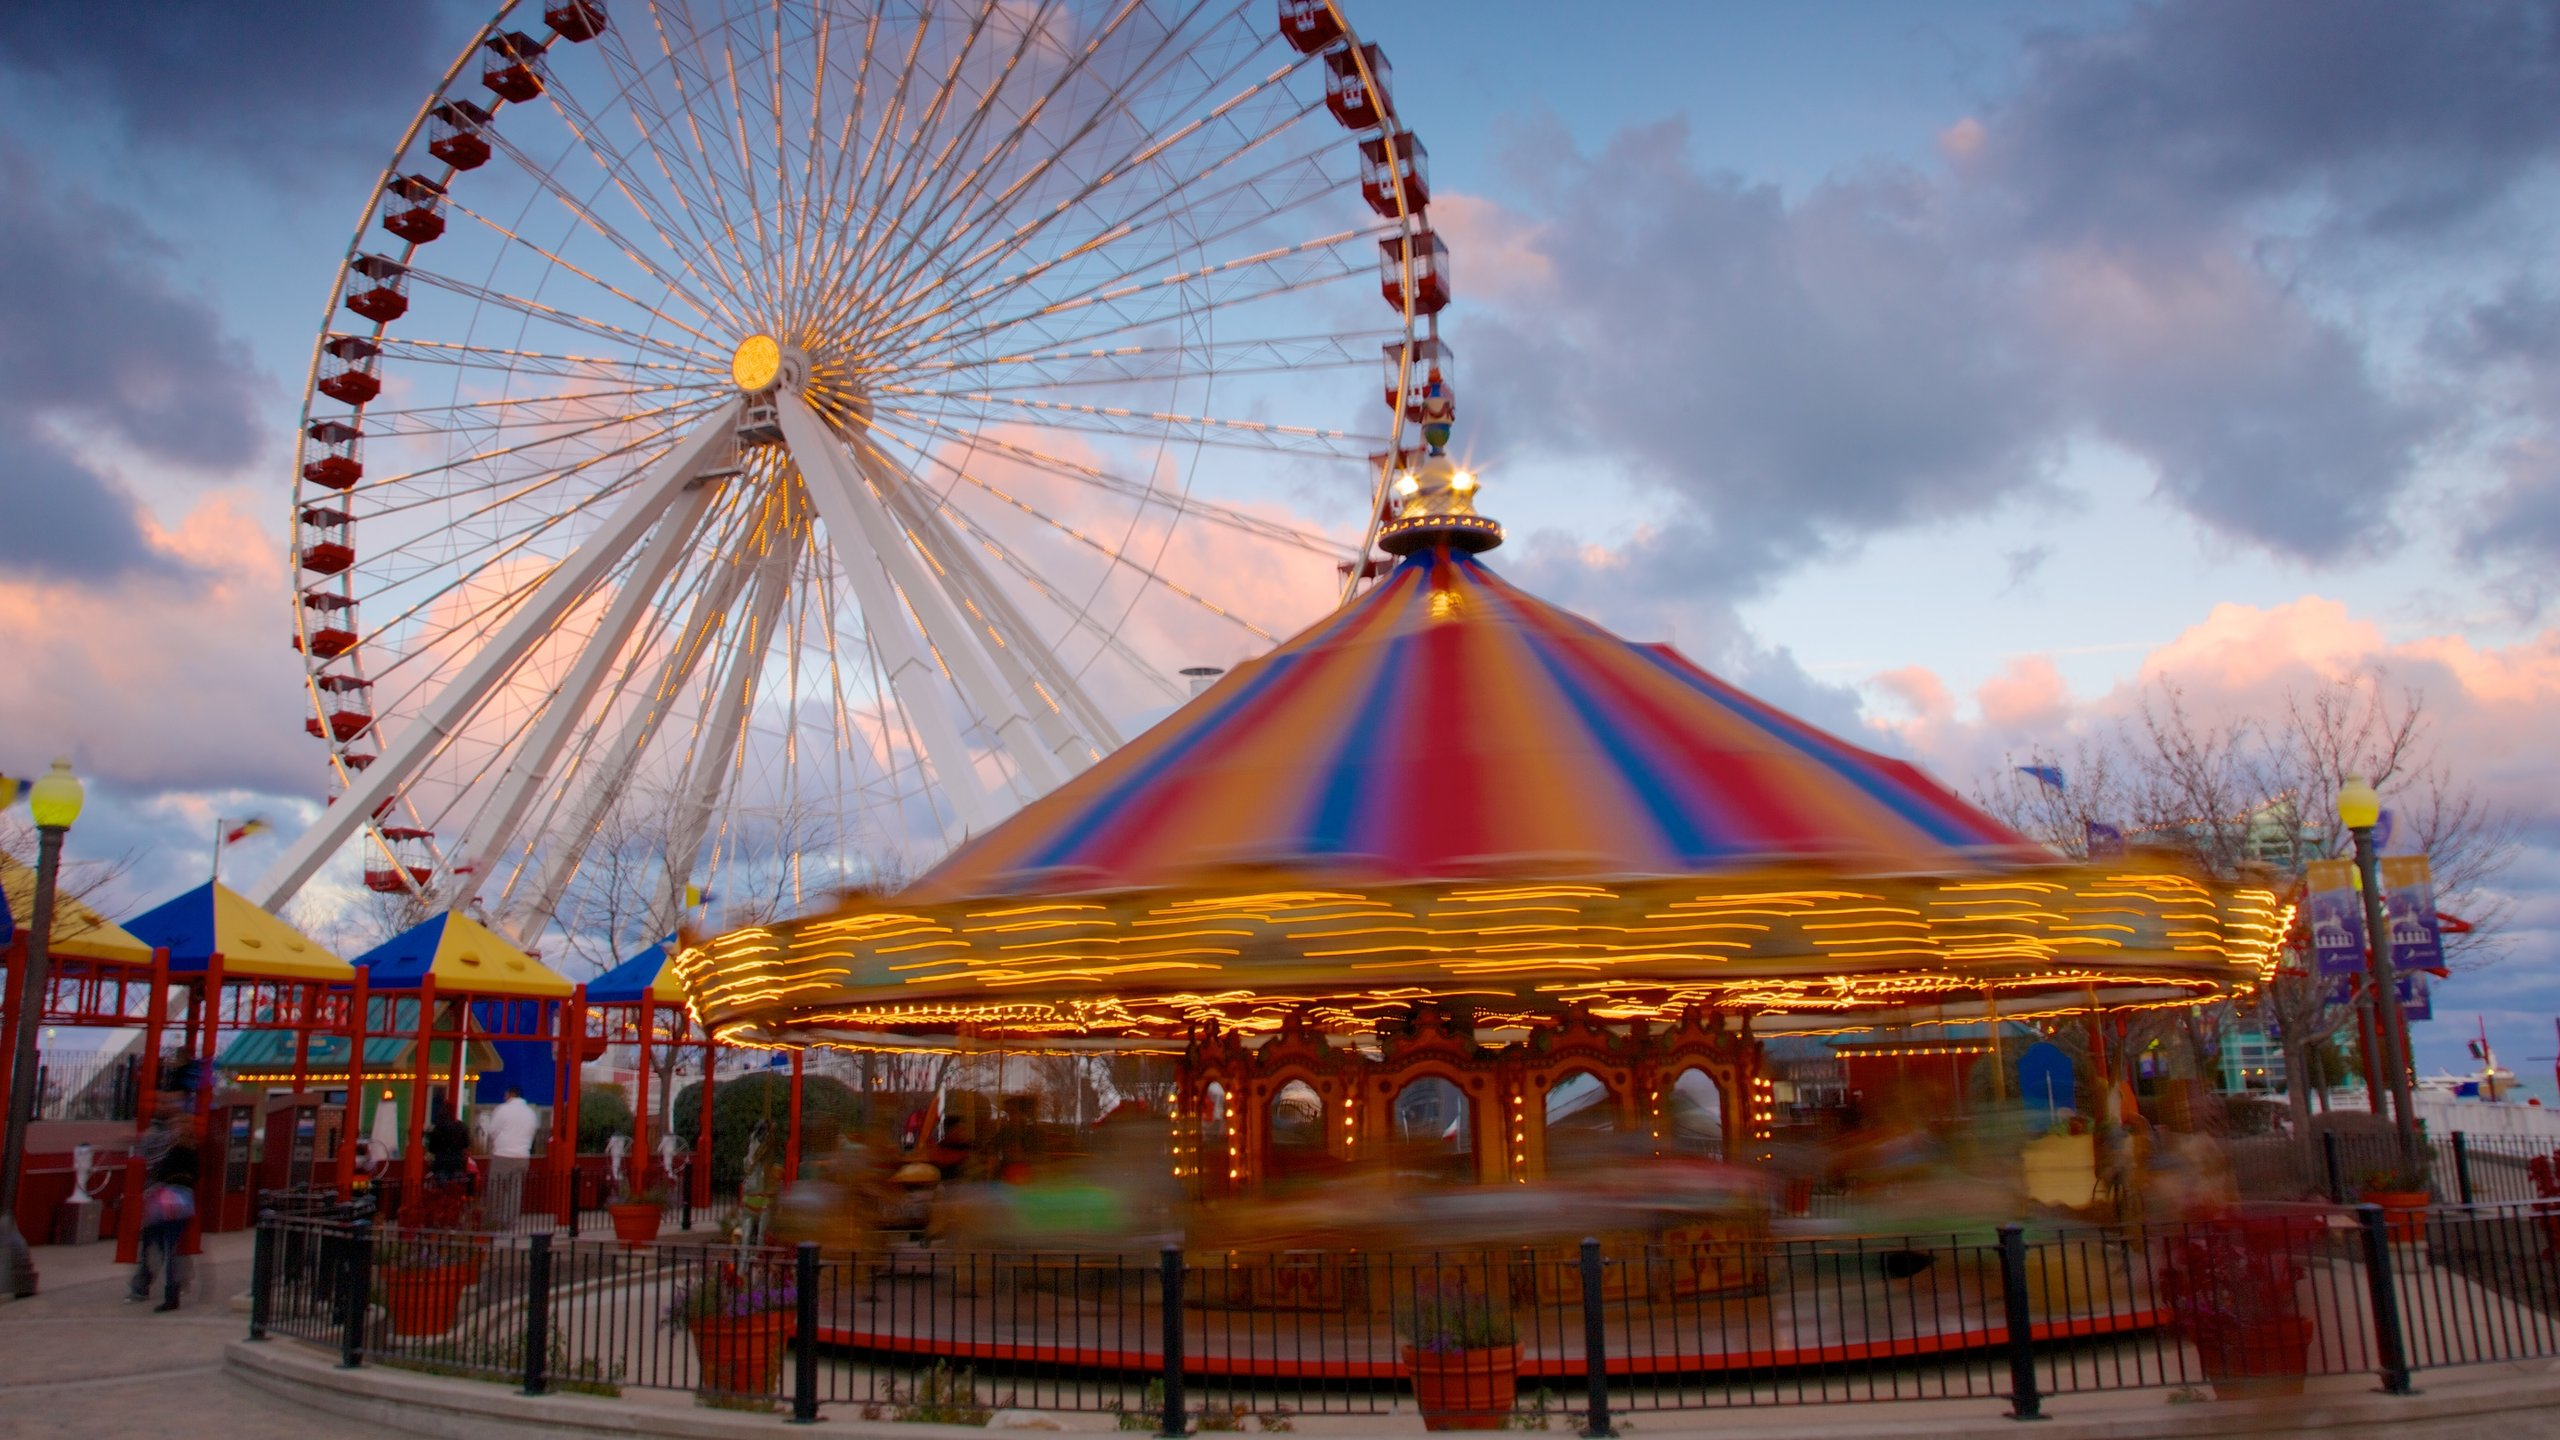 A ferris wheel, shopping, restaurants and more can be found in this waterfront entertainment district.